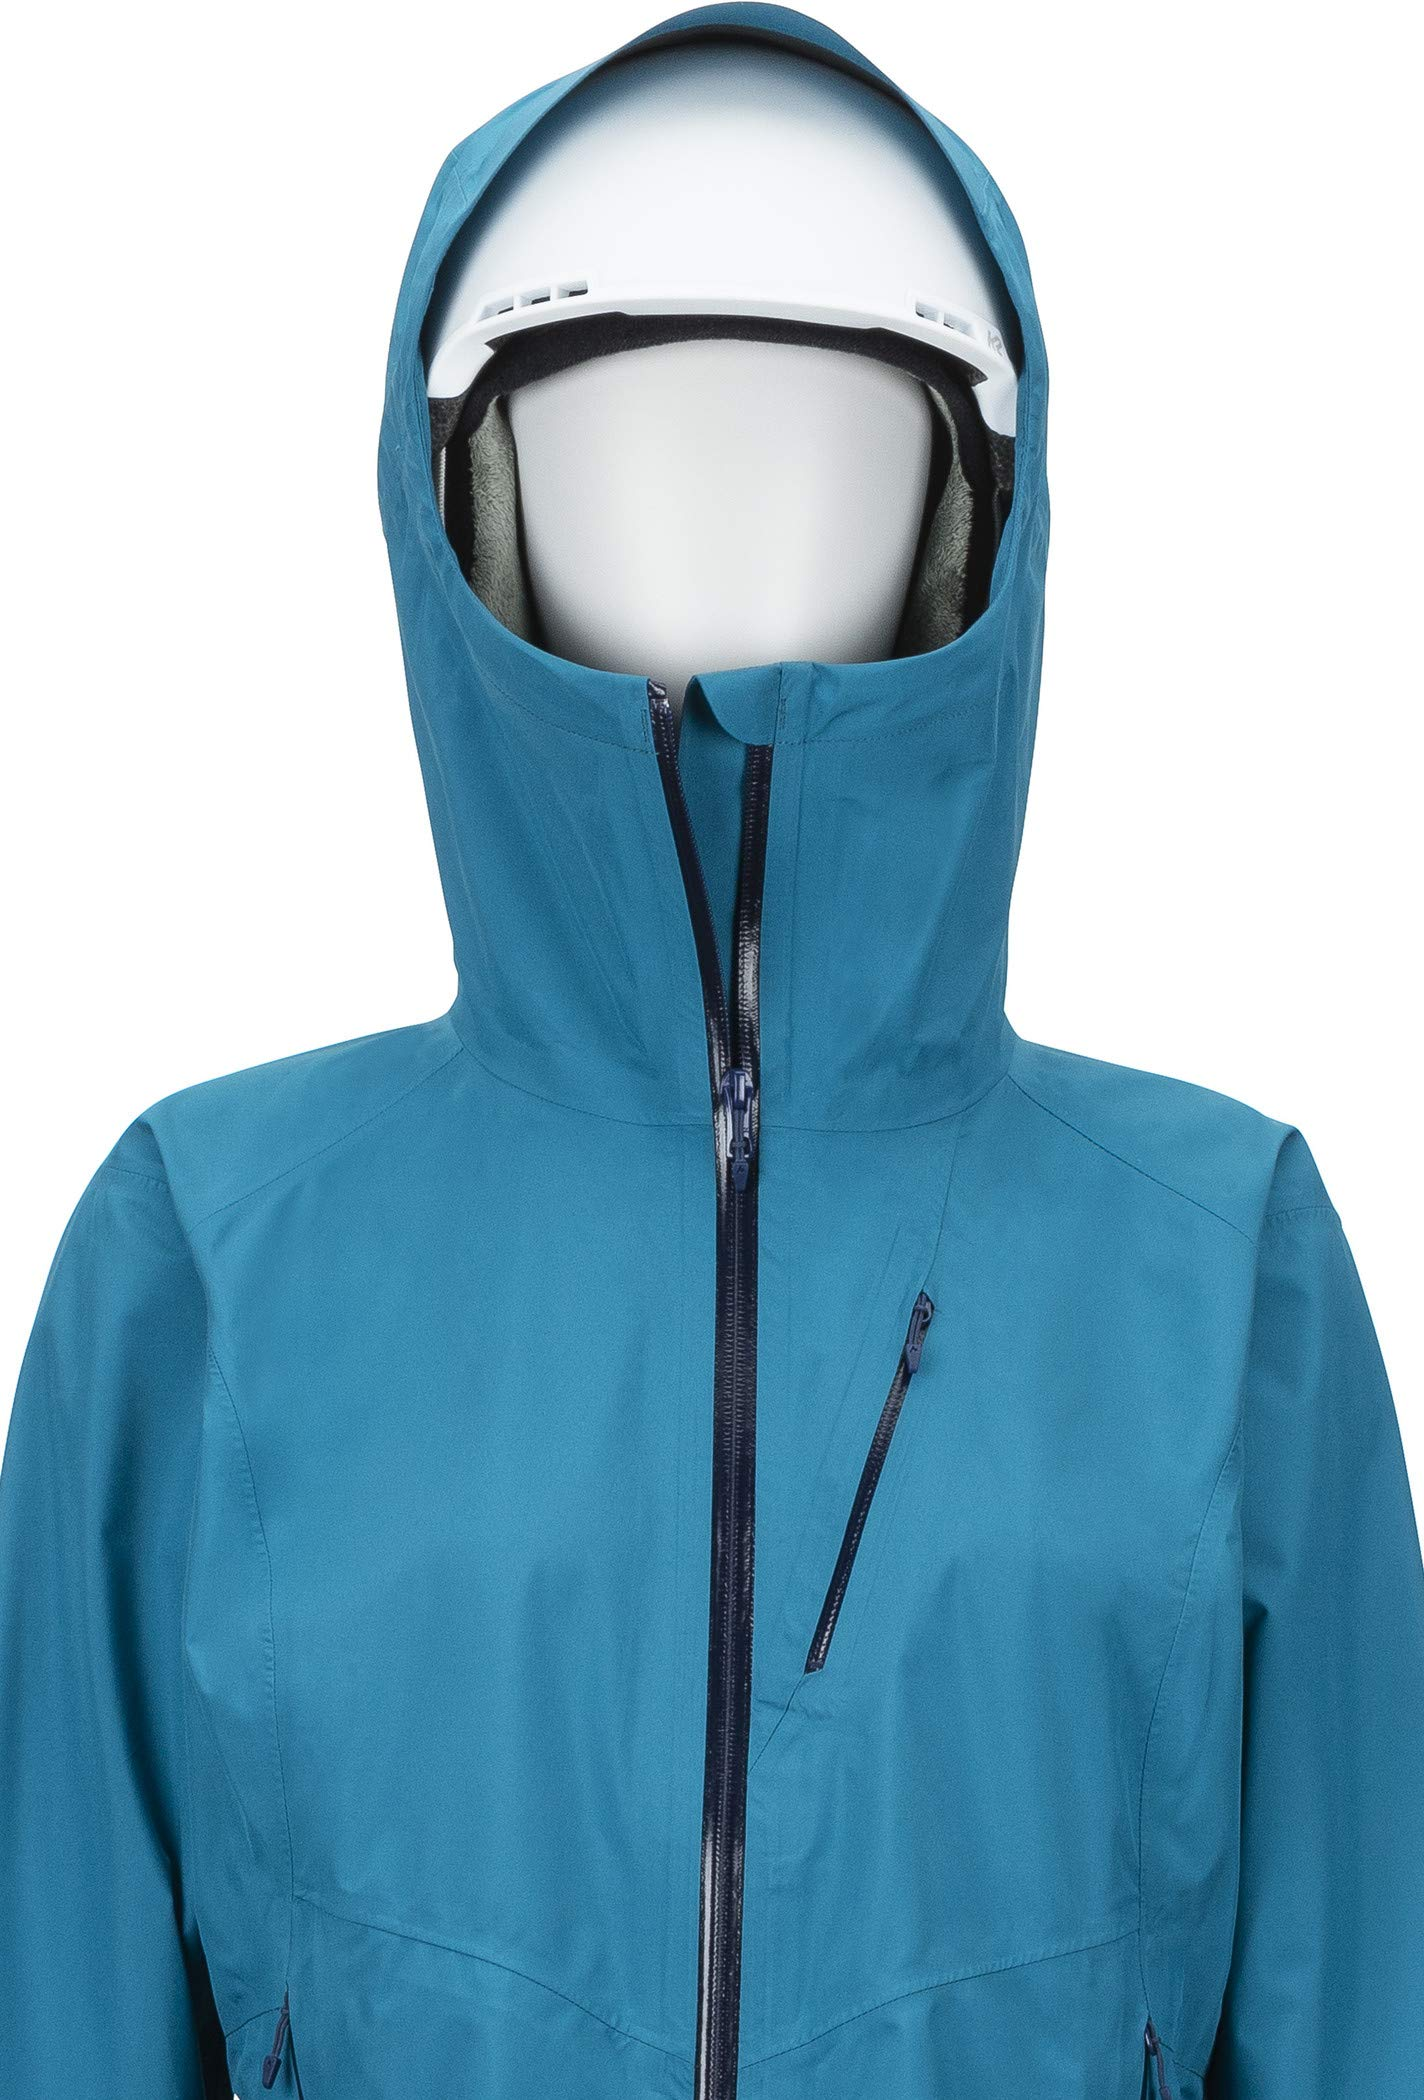 81Py9DKyWBL - Marmot Women's Wm's Knife Edge Hardshell Rain Jacket, Raincoat, Windproof, Waterproof, Breathable